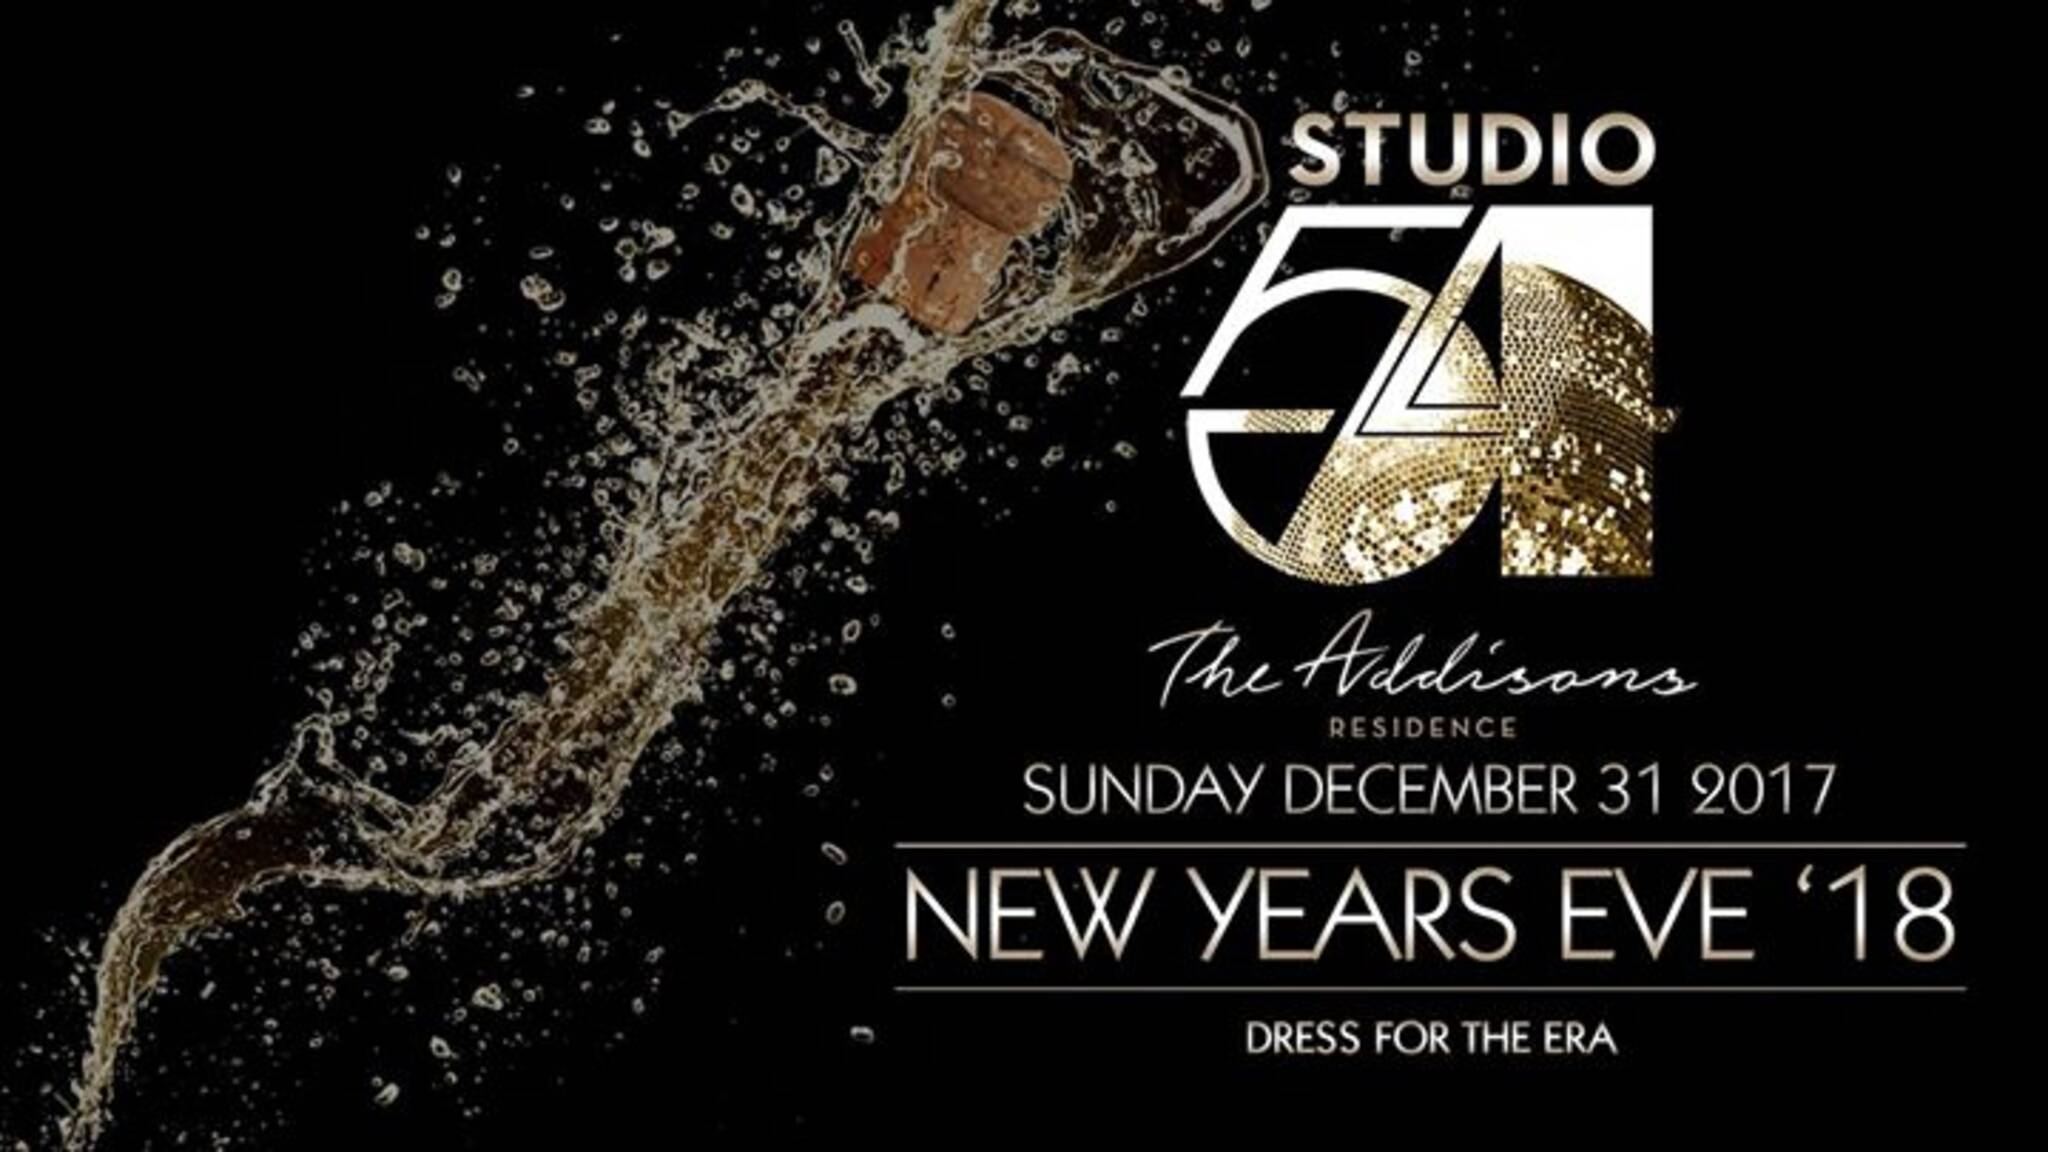 nye studio 54 at the addisons